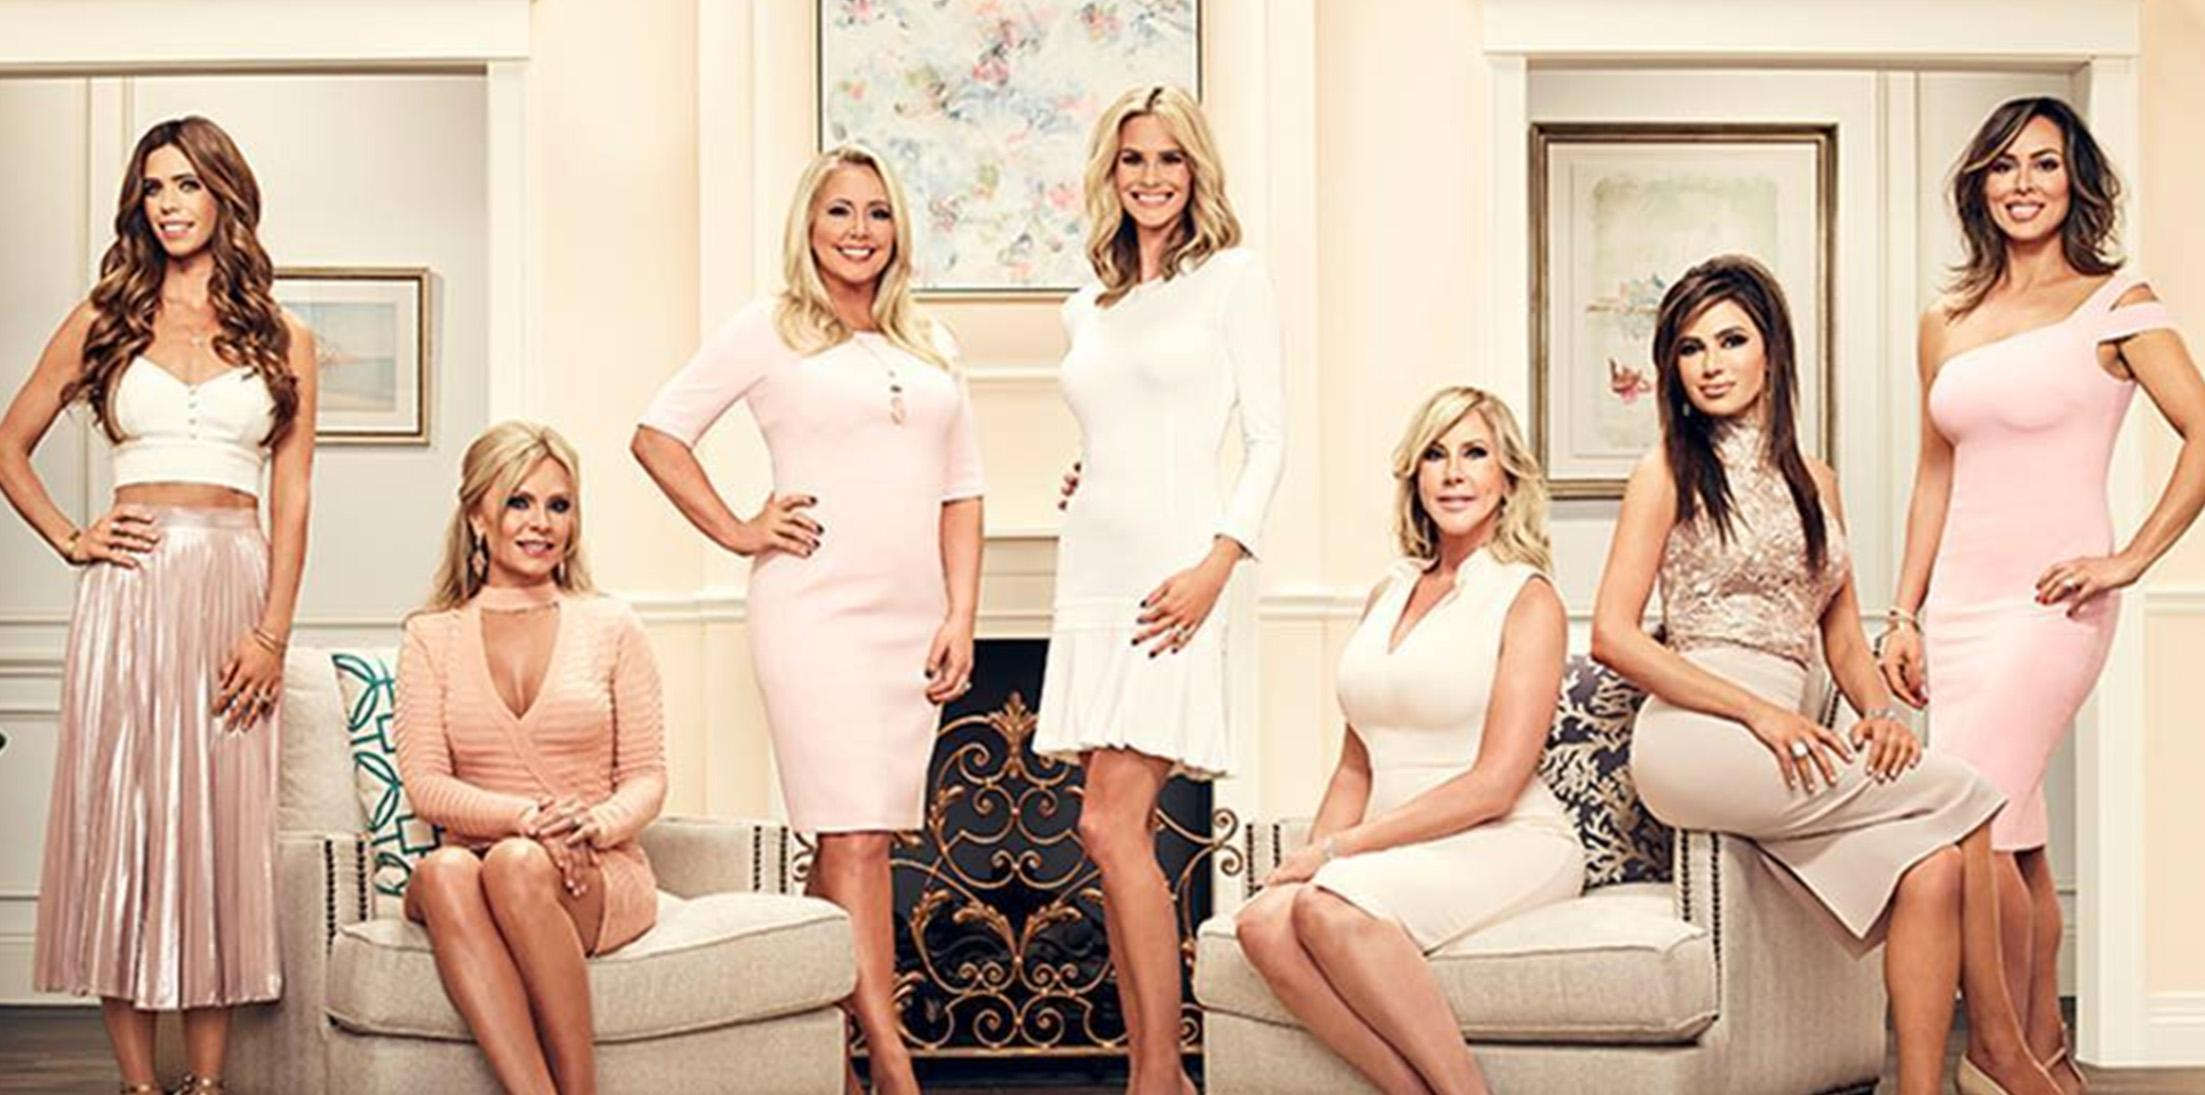 Real housewives of orange county new cast members feature